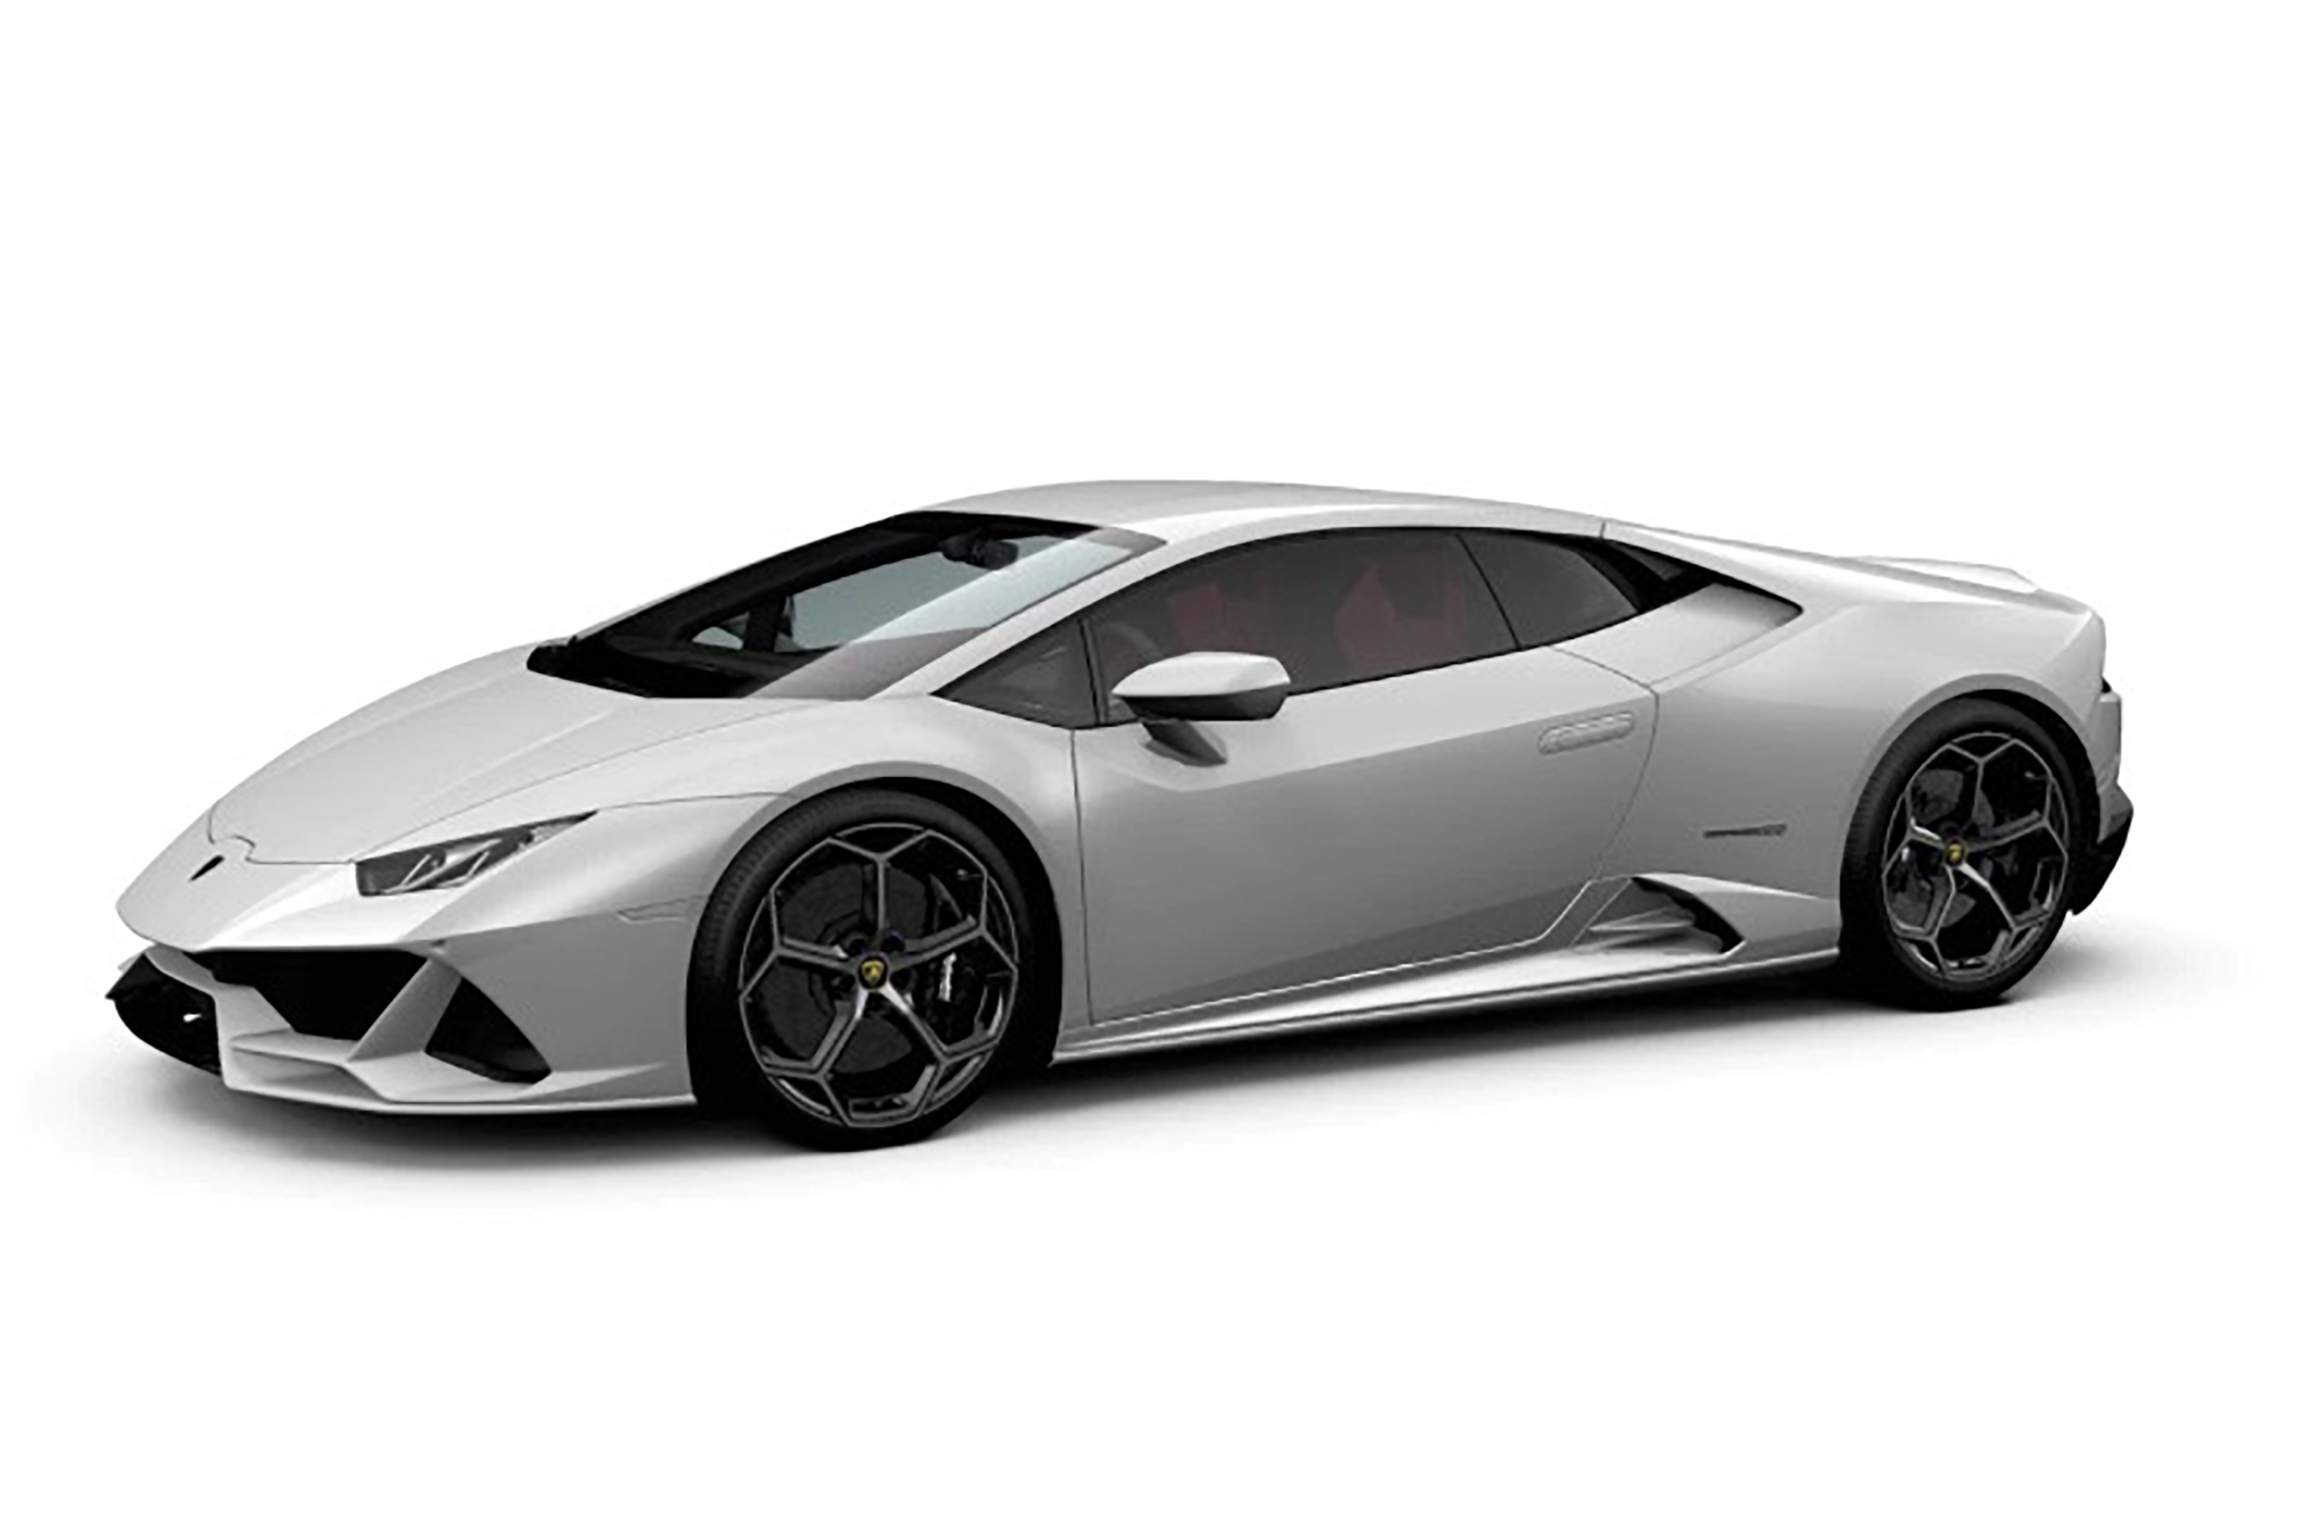 Lamborghini Huracan Evo 1 18 Mr Collection Models